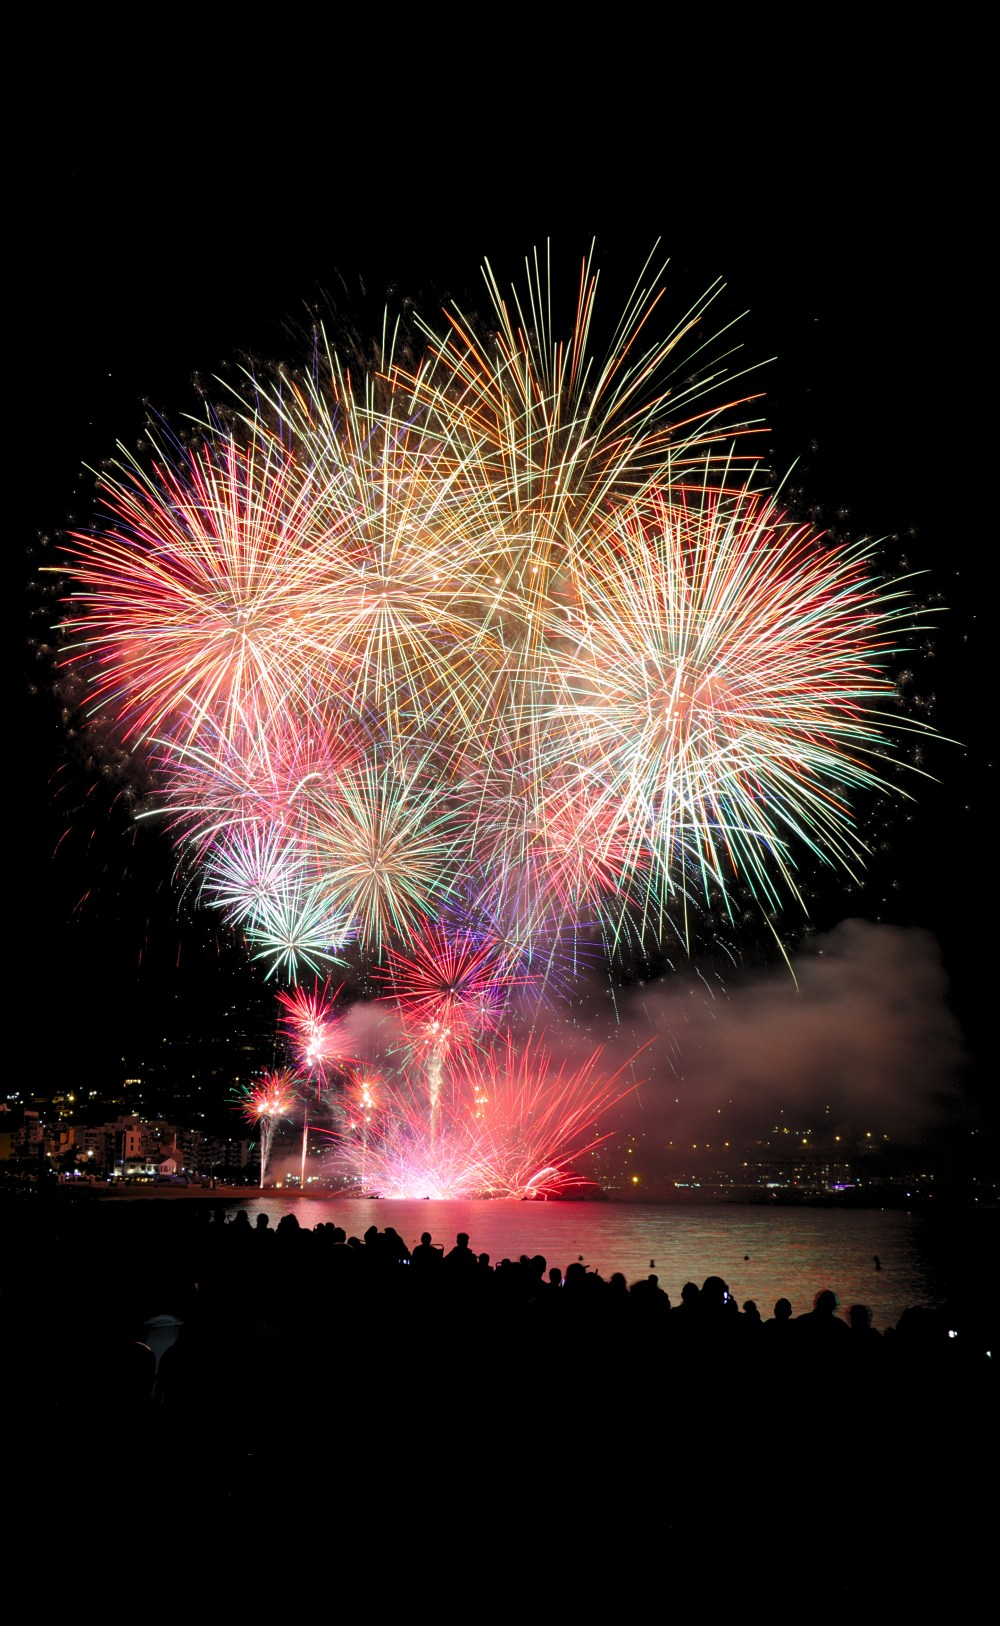 fireworks at blanes hd